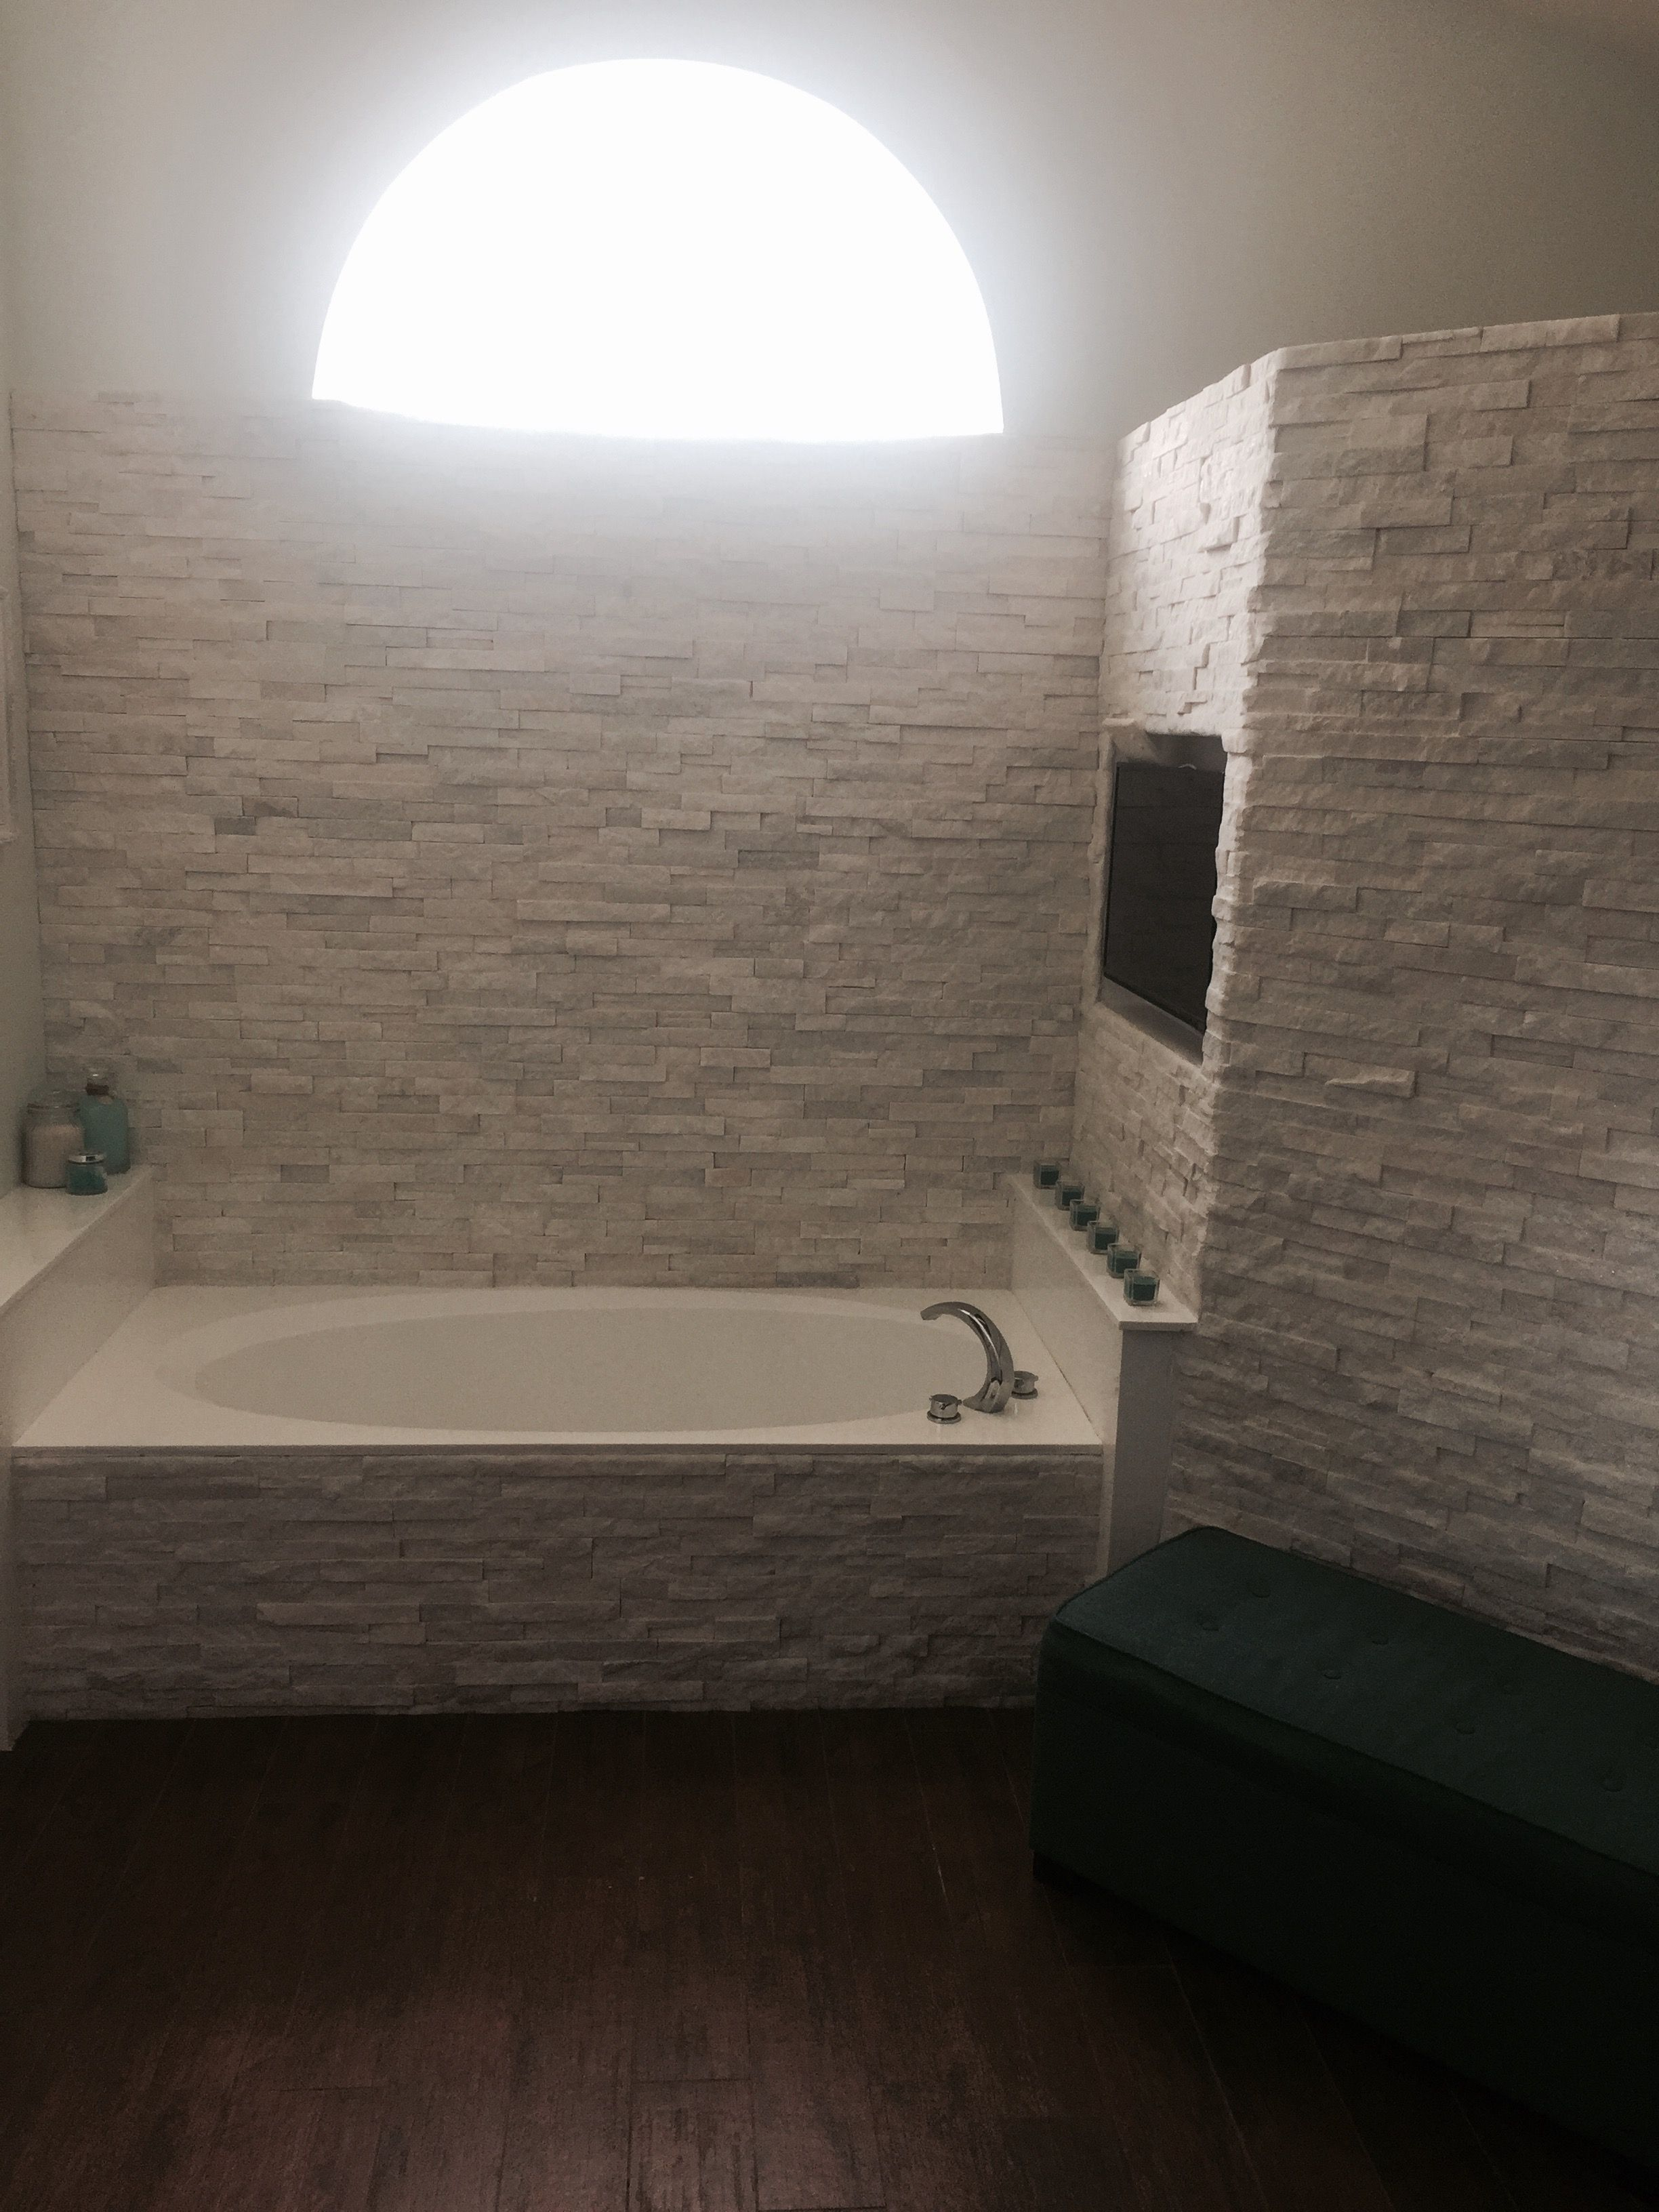 Modern Contemporary Master Bathroom Remodel White Ledger Stone Surrounds Walk In Shower Bathtub Wall Cut Out For Flat Screen Tv Above The